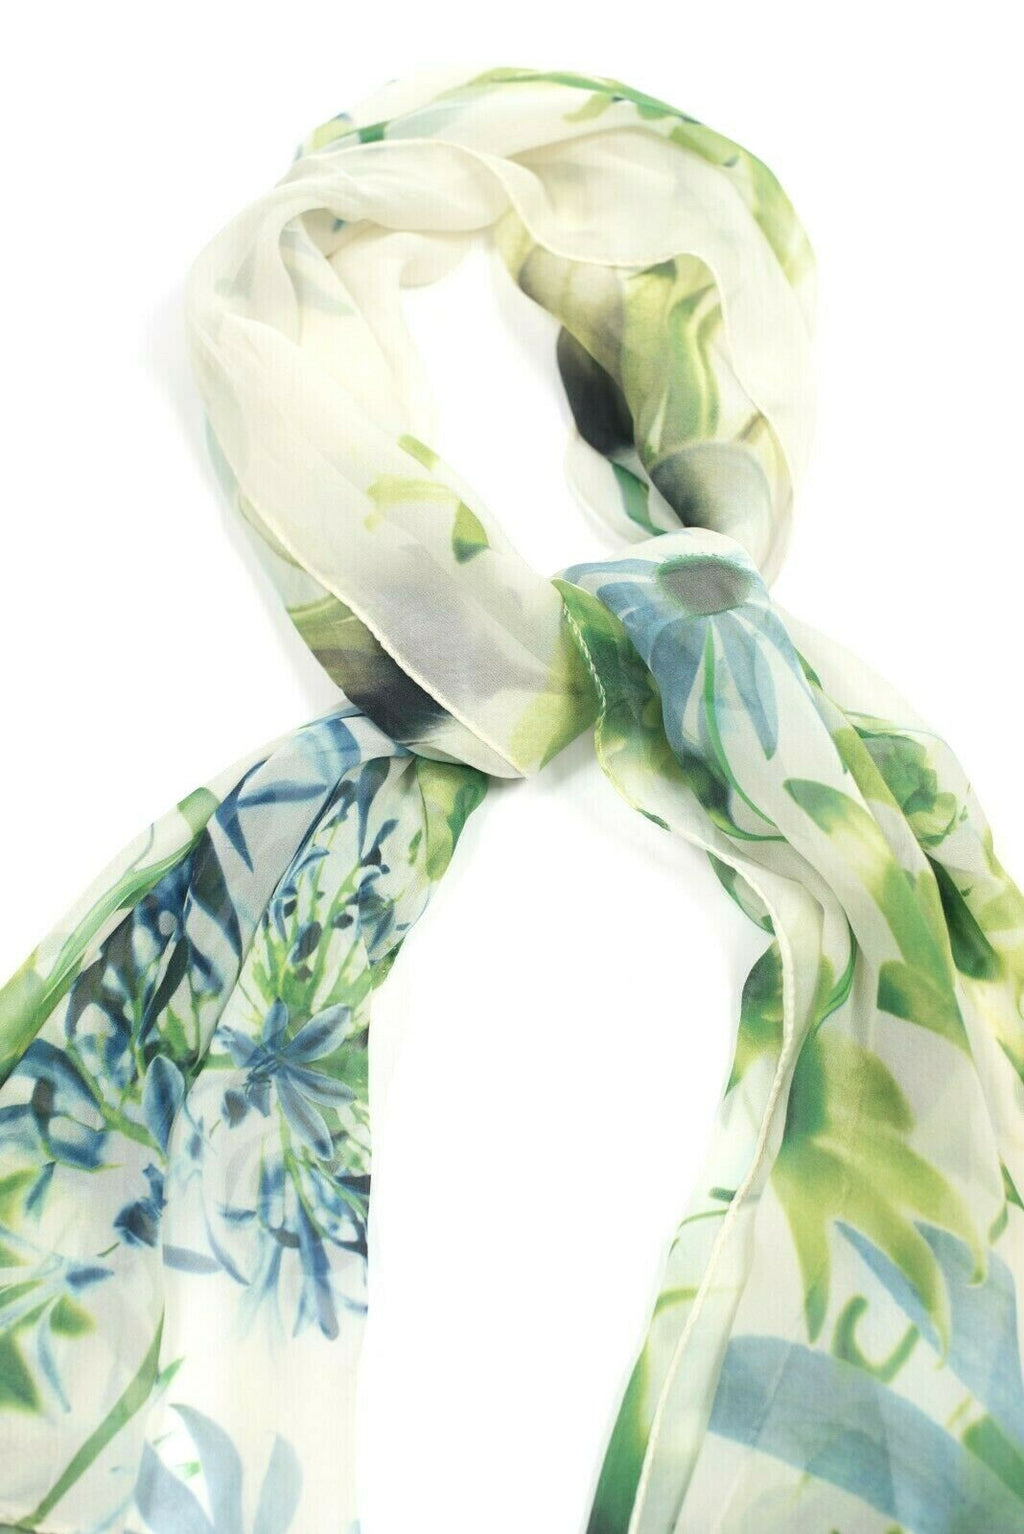 Max Mara Womens Large Ivory Green Blue Scarf Authentic Silk Sheer Floral Leaves